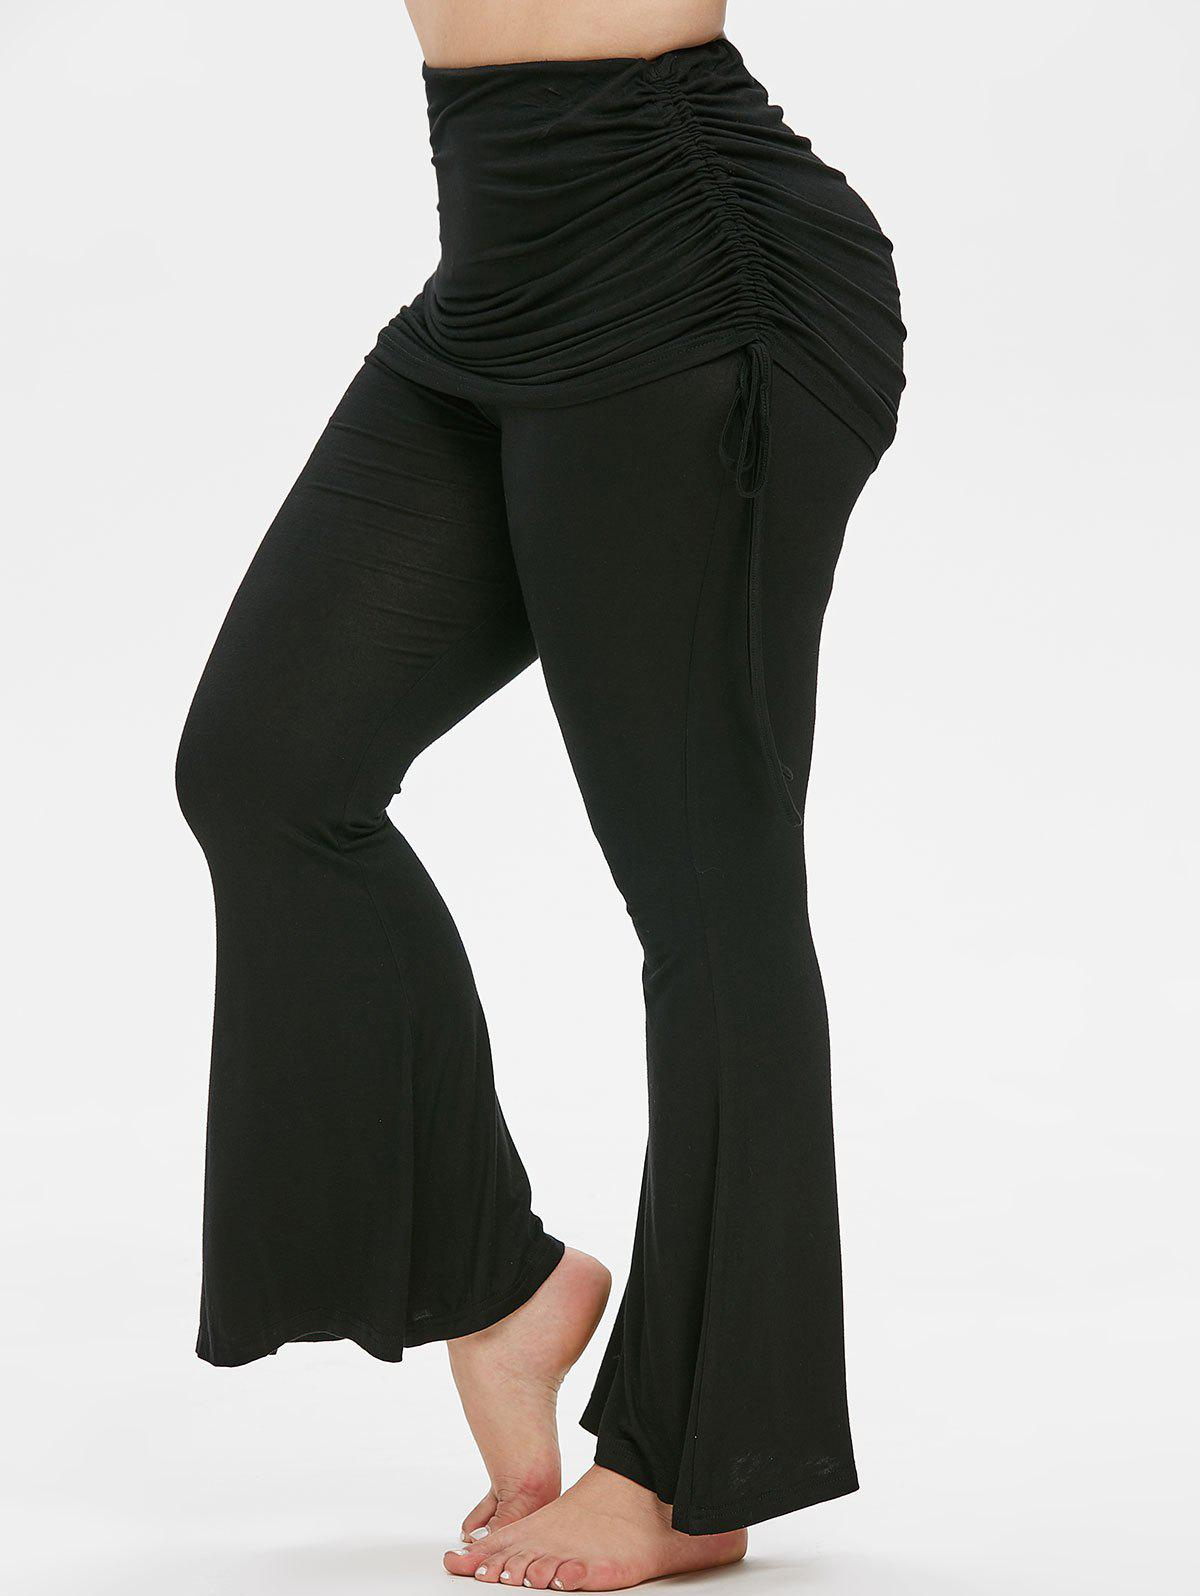 Fancy Plus Size Cinched Skirted Bell Bottom Pants